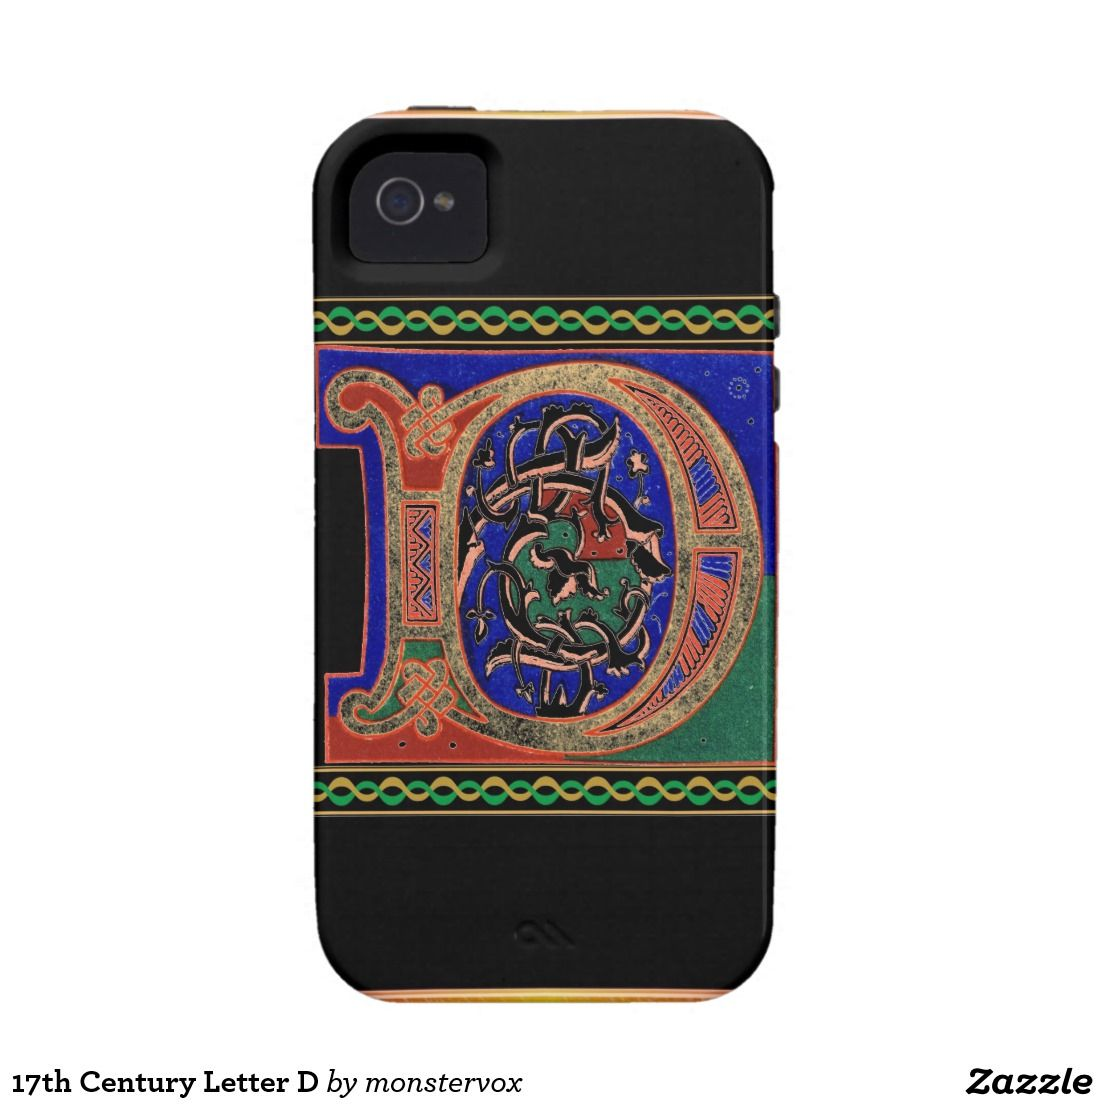 17th Century Letter D Vibe iPhone 4 Cover #Alphabet #Letter #English #Historic #Phone #iPhone #Mobile #Case #Cover